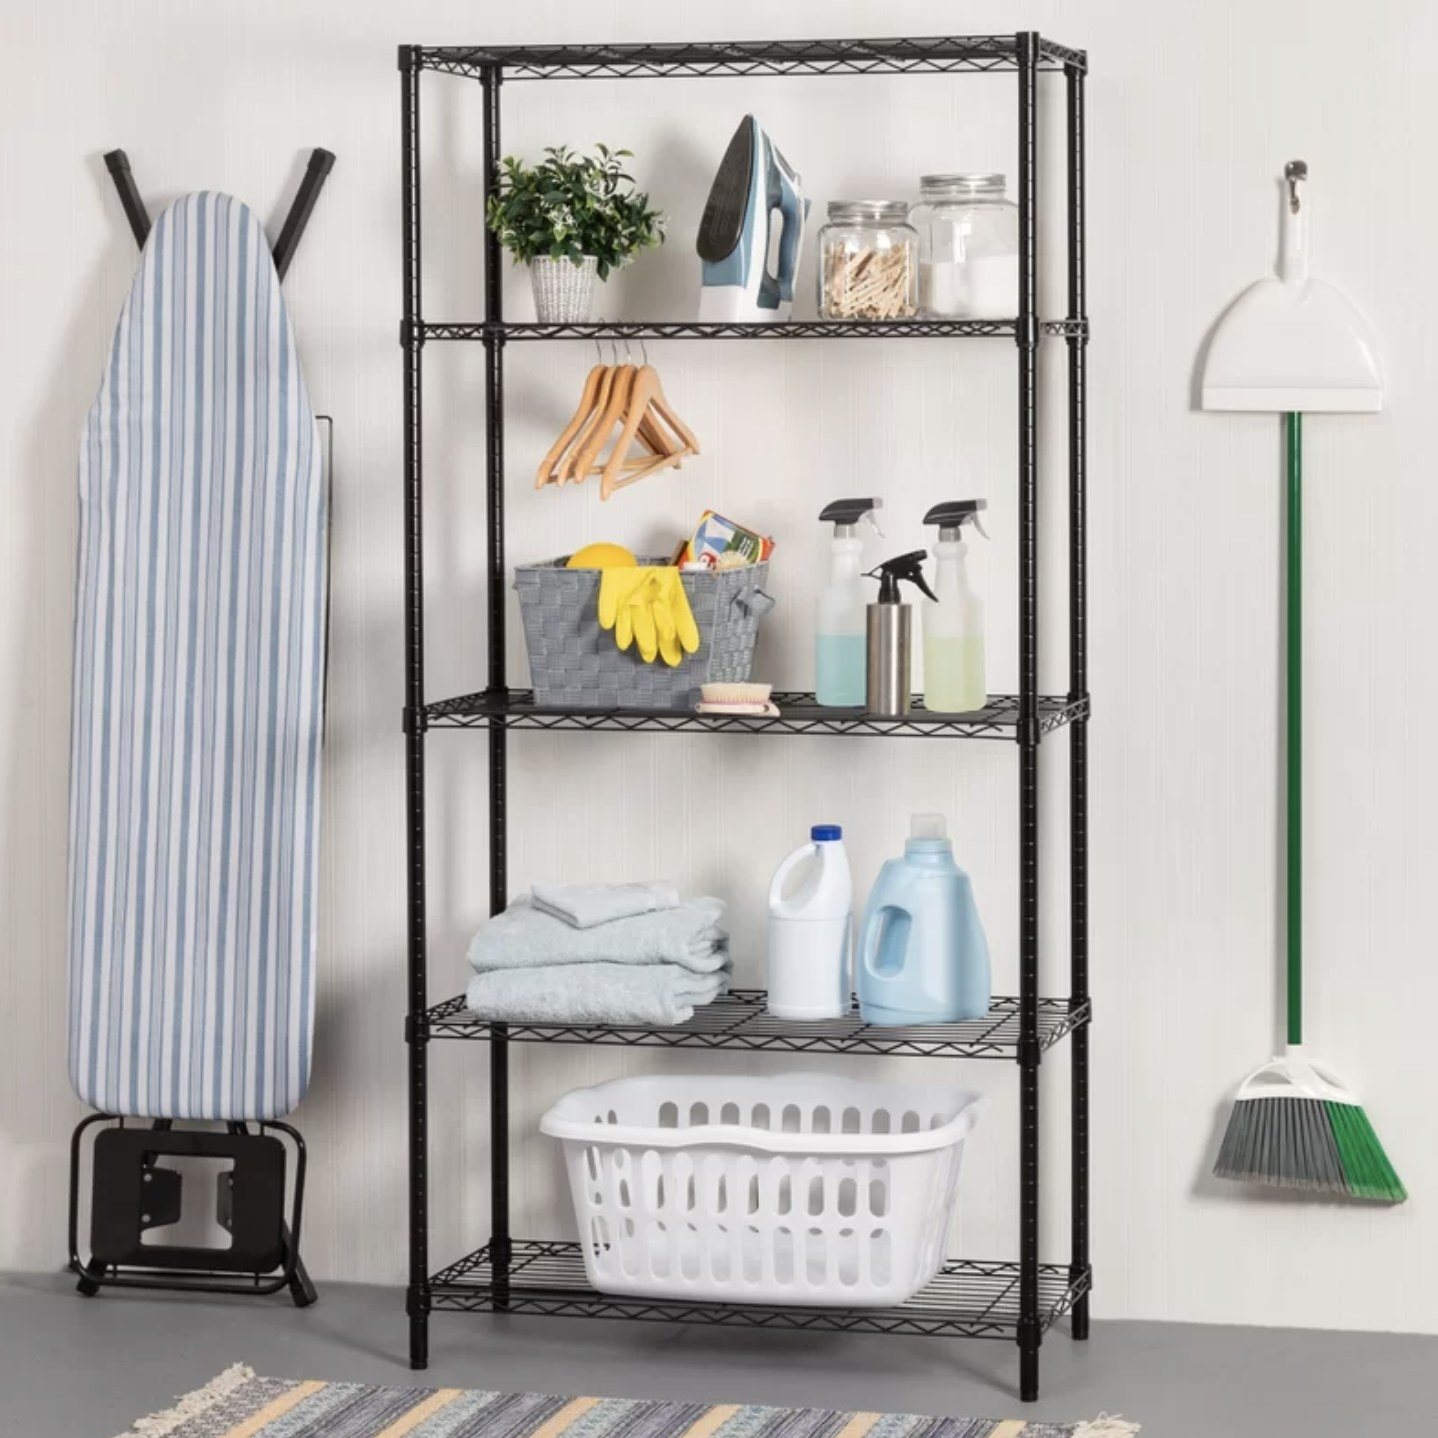 The shelving unit with several things on it